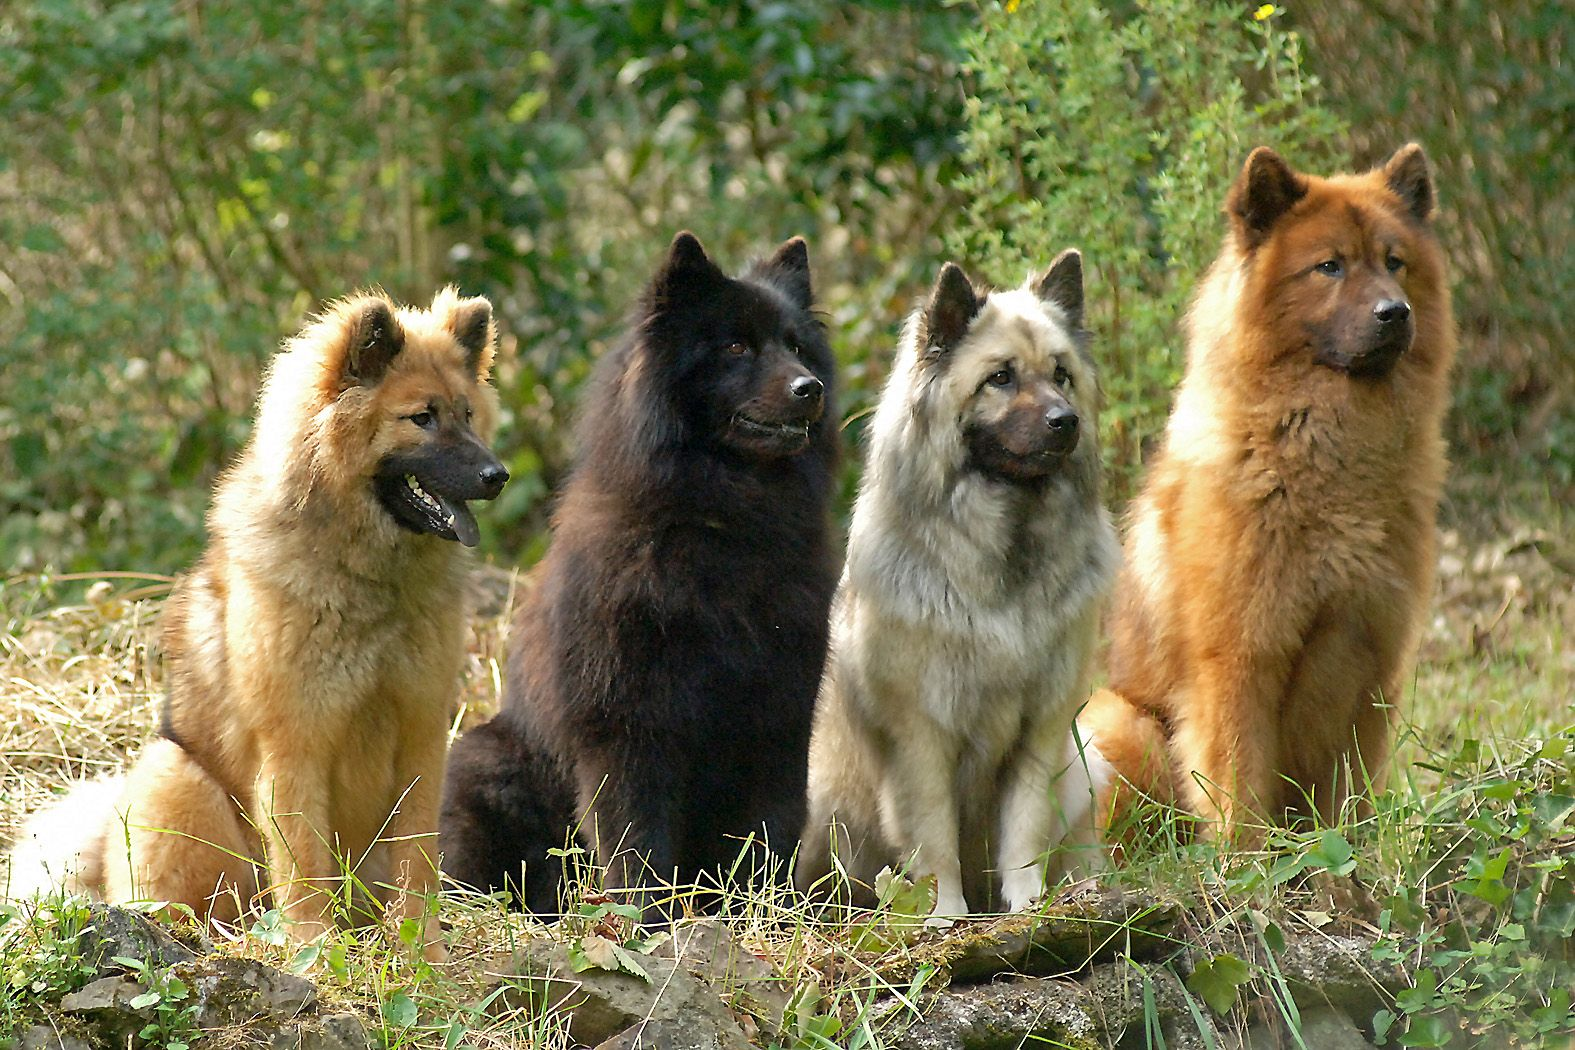 The Eurasier Sometimes Referred To As Eurasian Is A Breed Of Dog Of Spitz Type That Originated In Germany It Is Widely Know Eurasian Dog Eurasier Dog Breeds